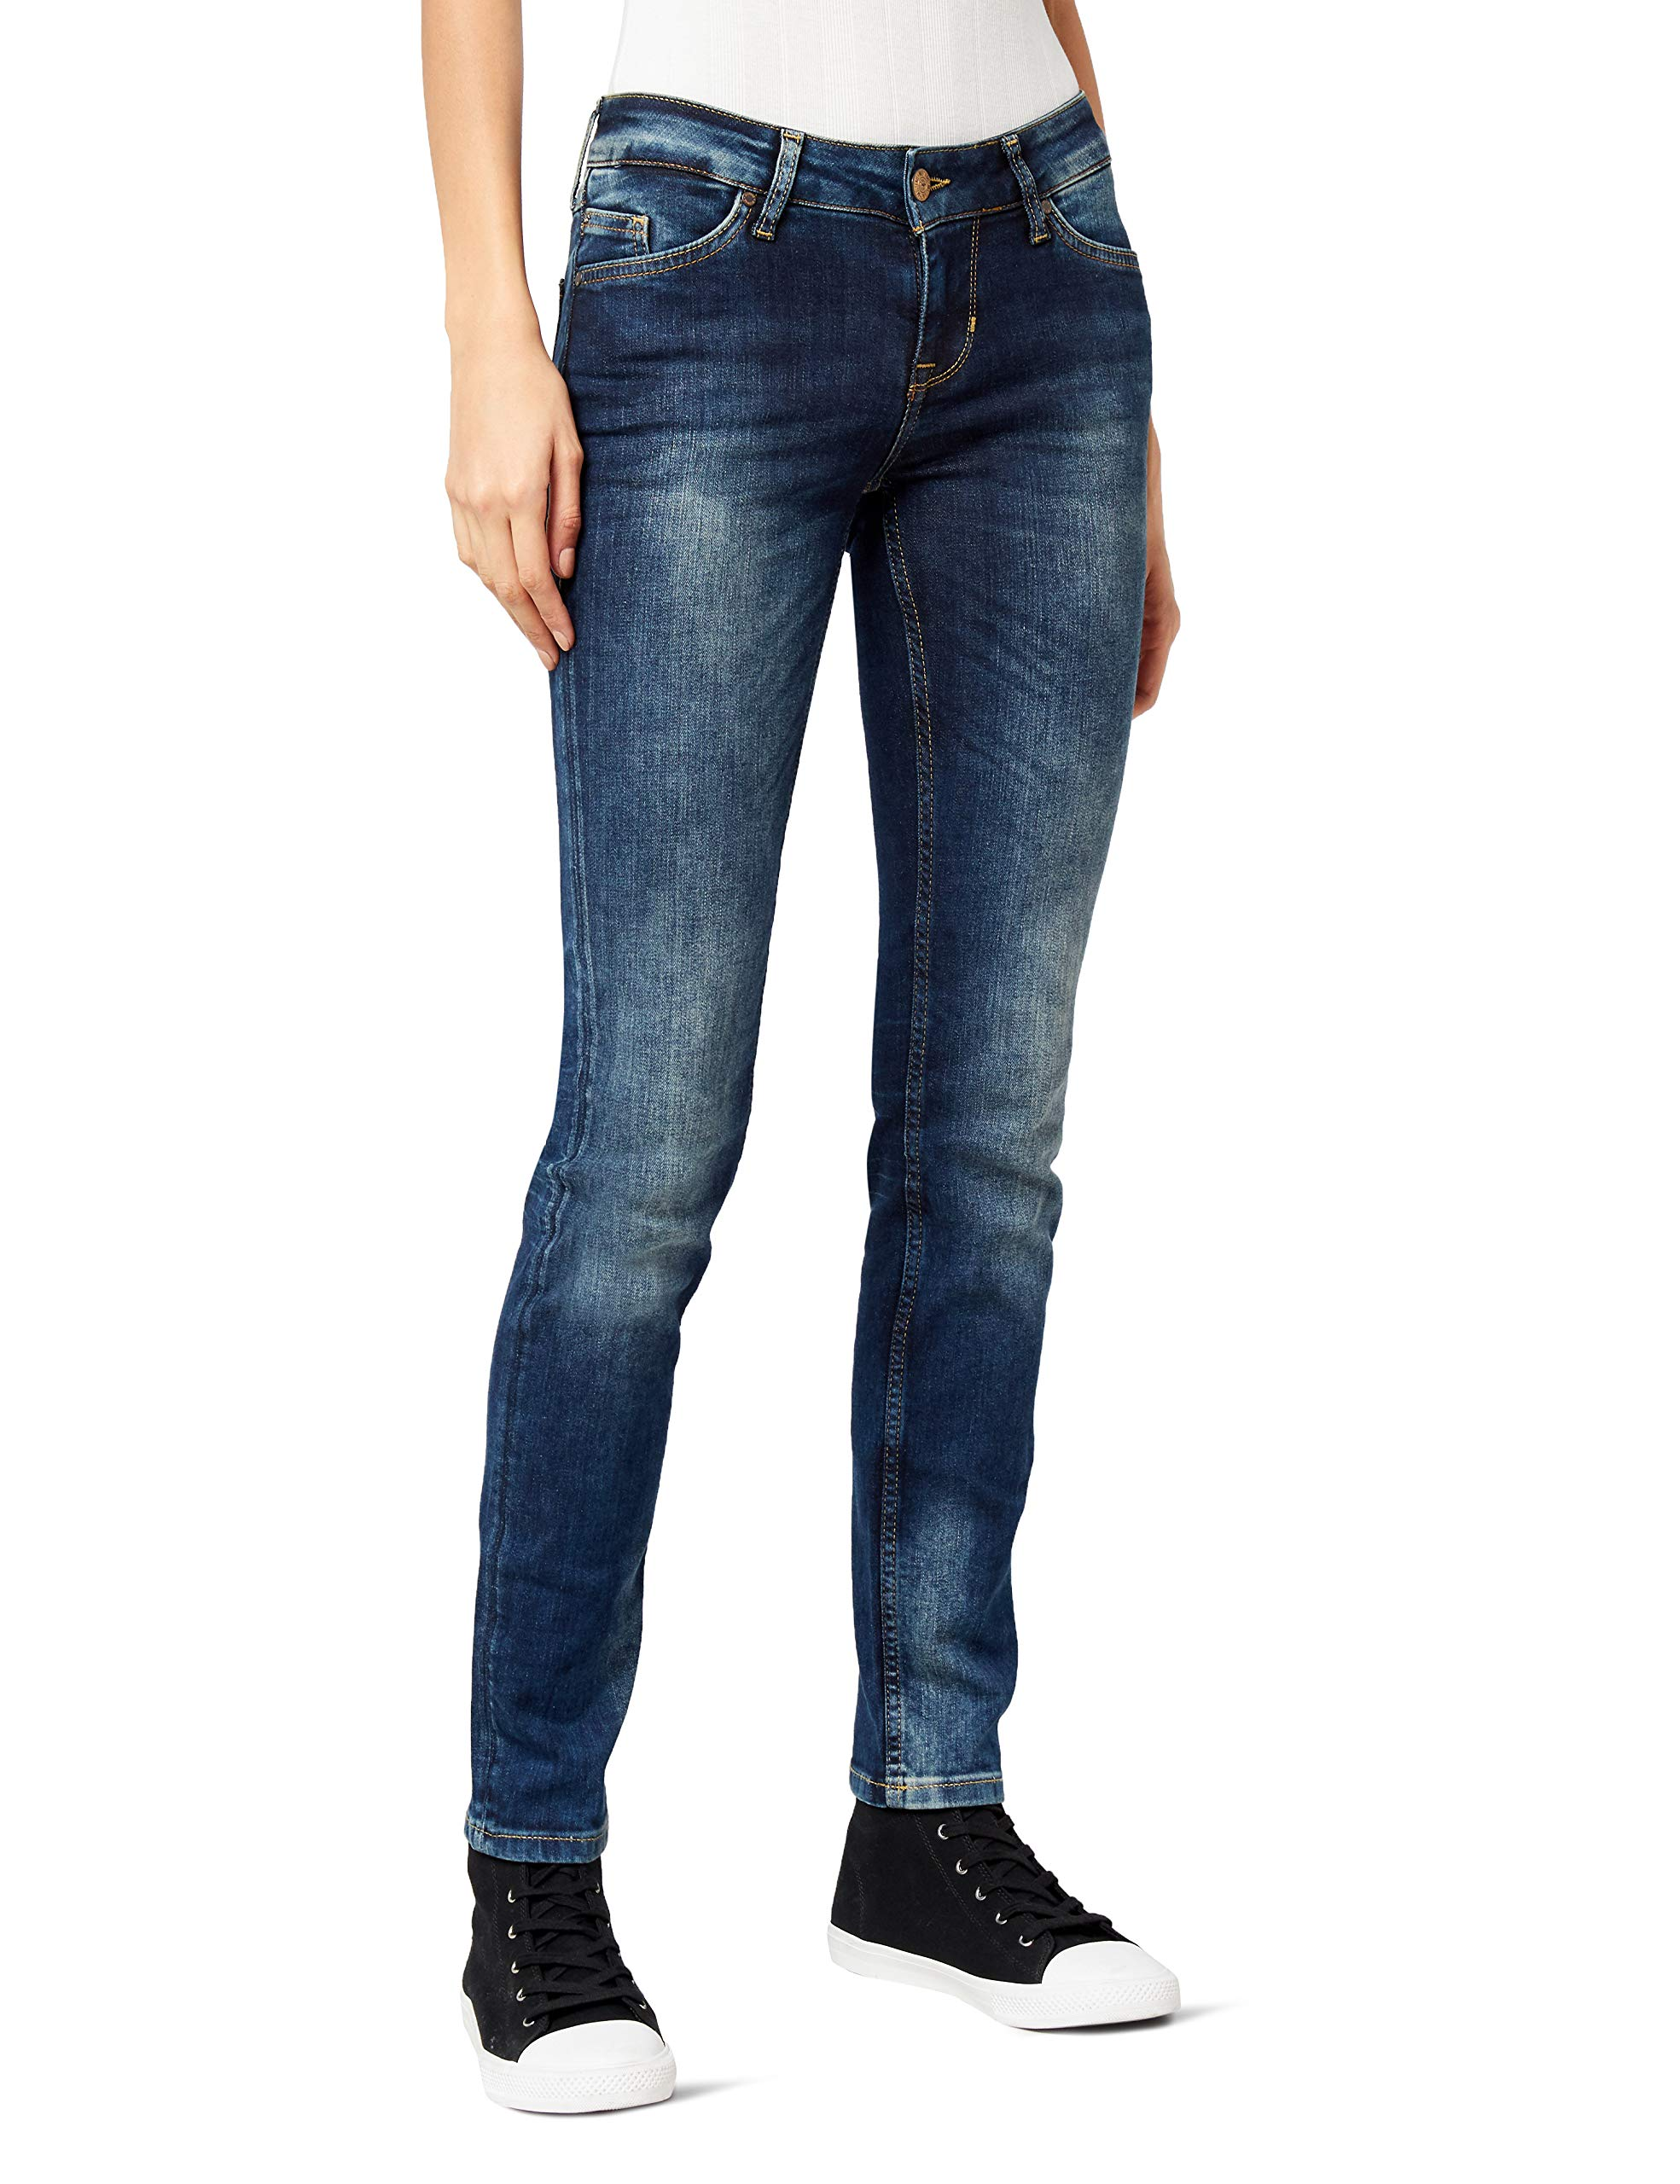 Mustang l32taille 586W27 JeansBleudark Used Fabricant27 32Femme Jasmin ED29WIH